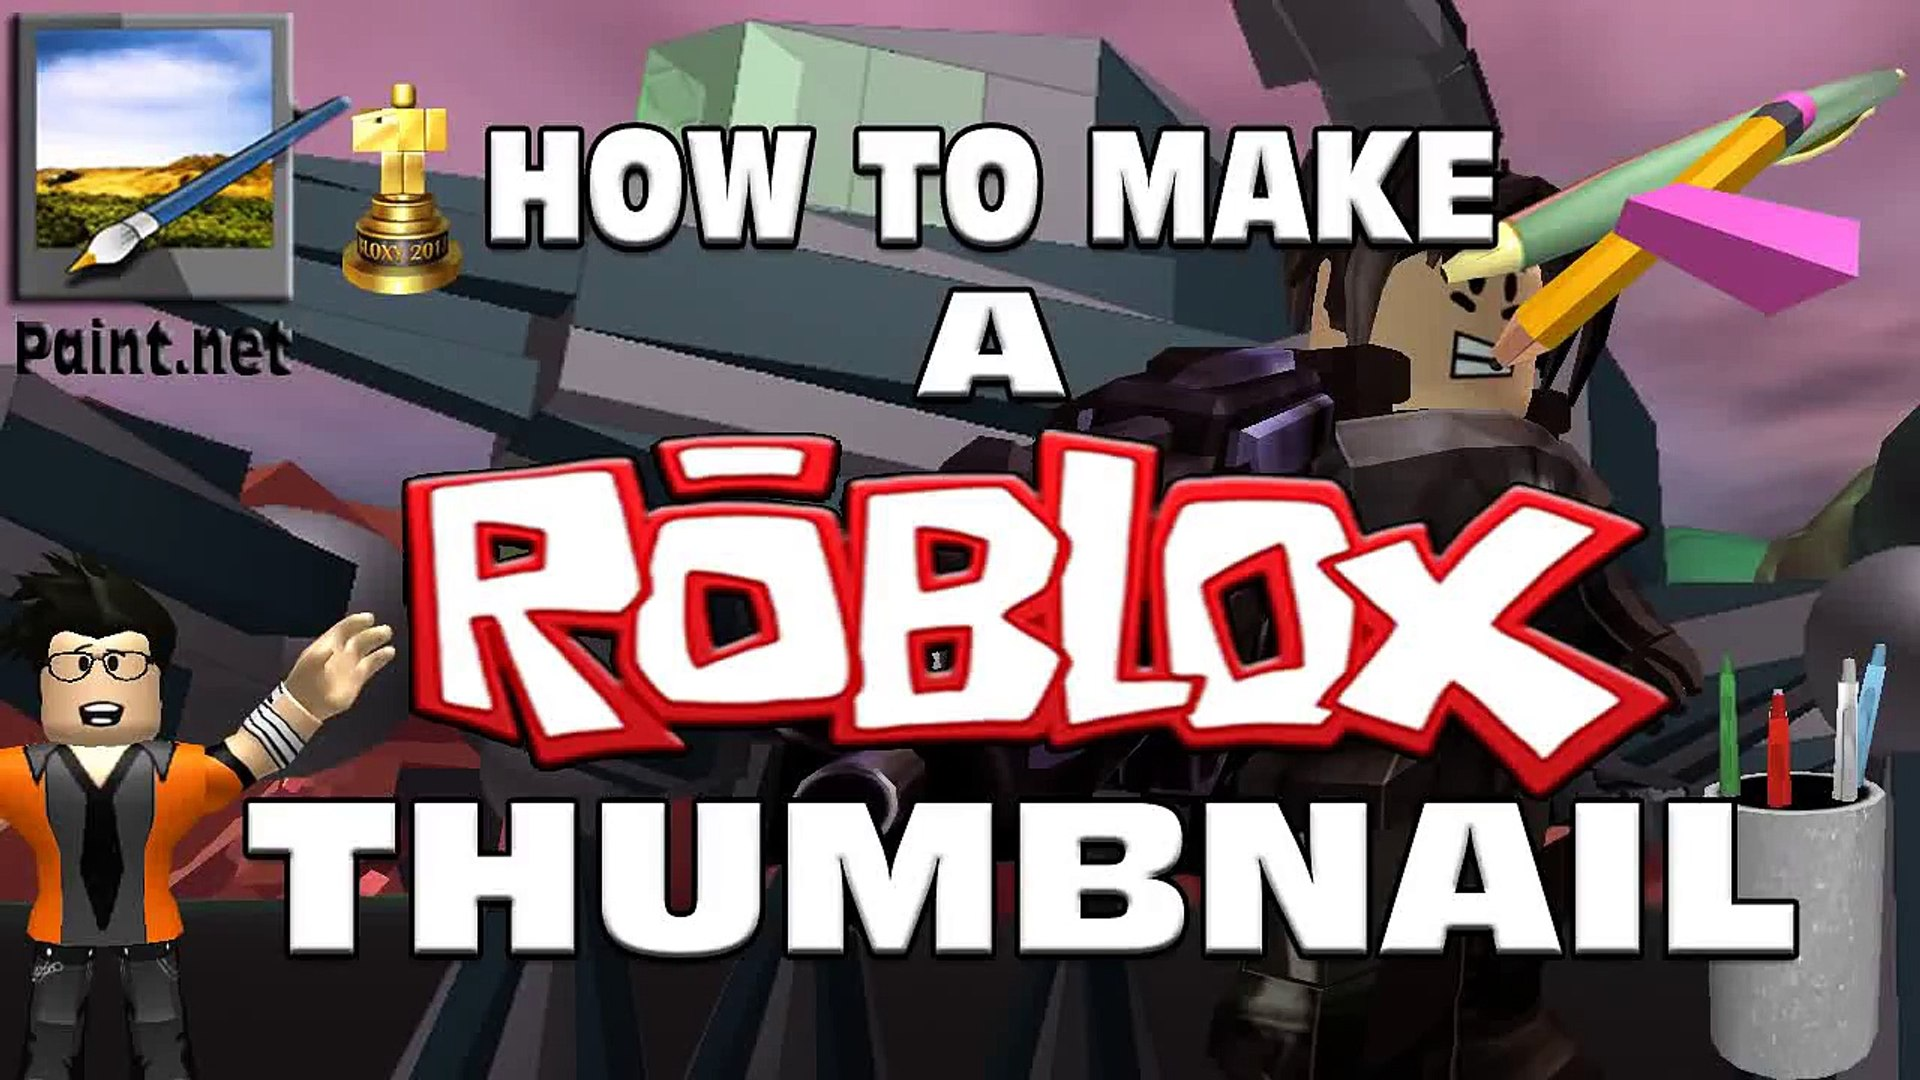 How To Make Roblox Thumbnails For Youtube How To Make A Roblox Thumbnail In Paint Net Roblox Video Tutorials Video Dailymotion